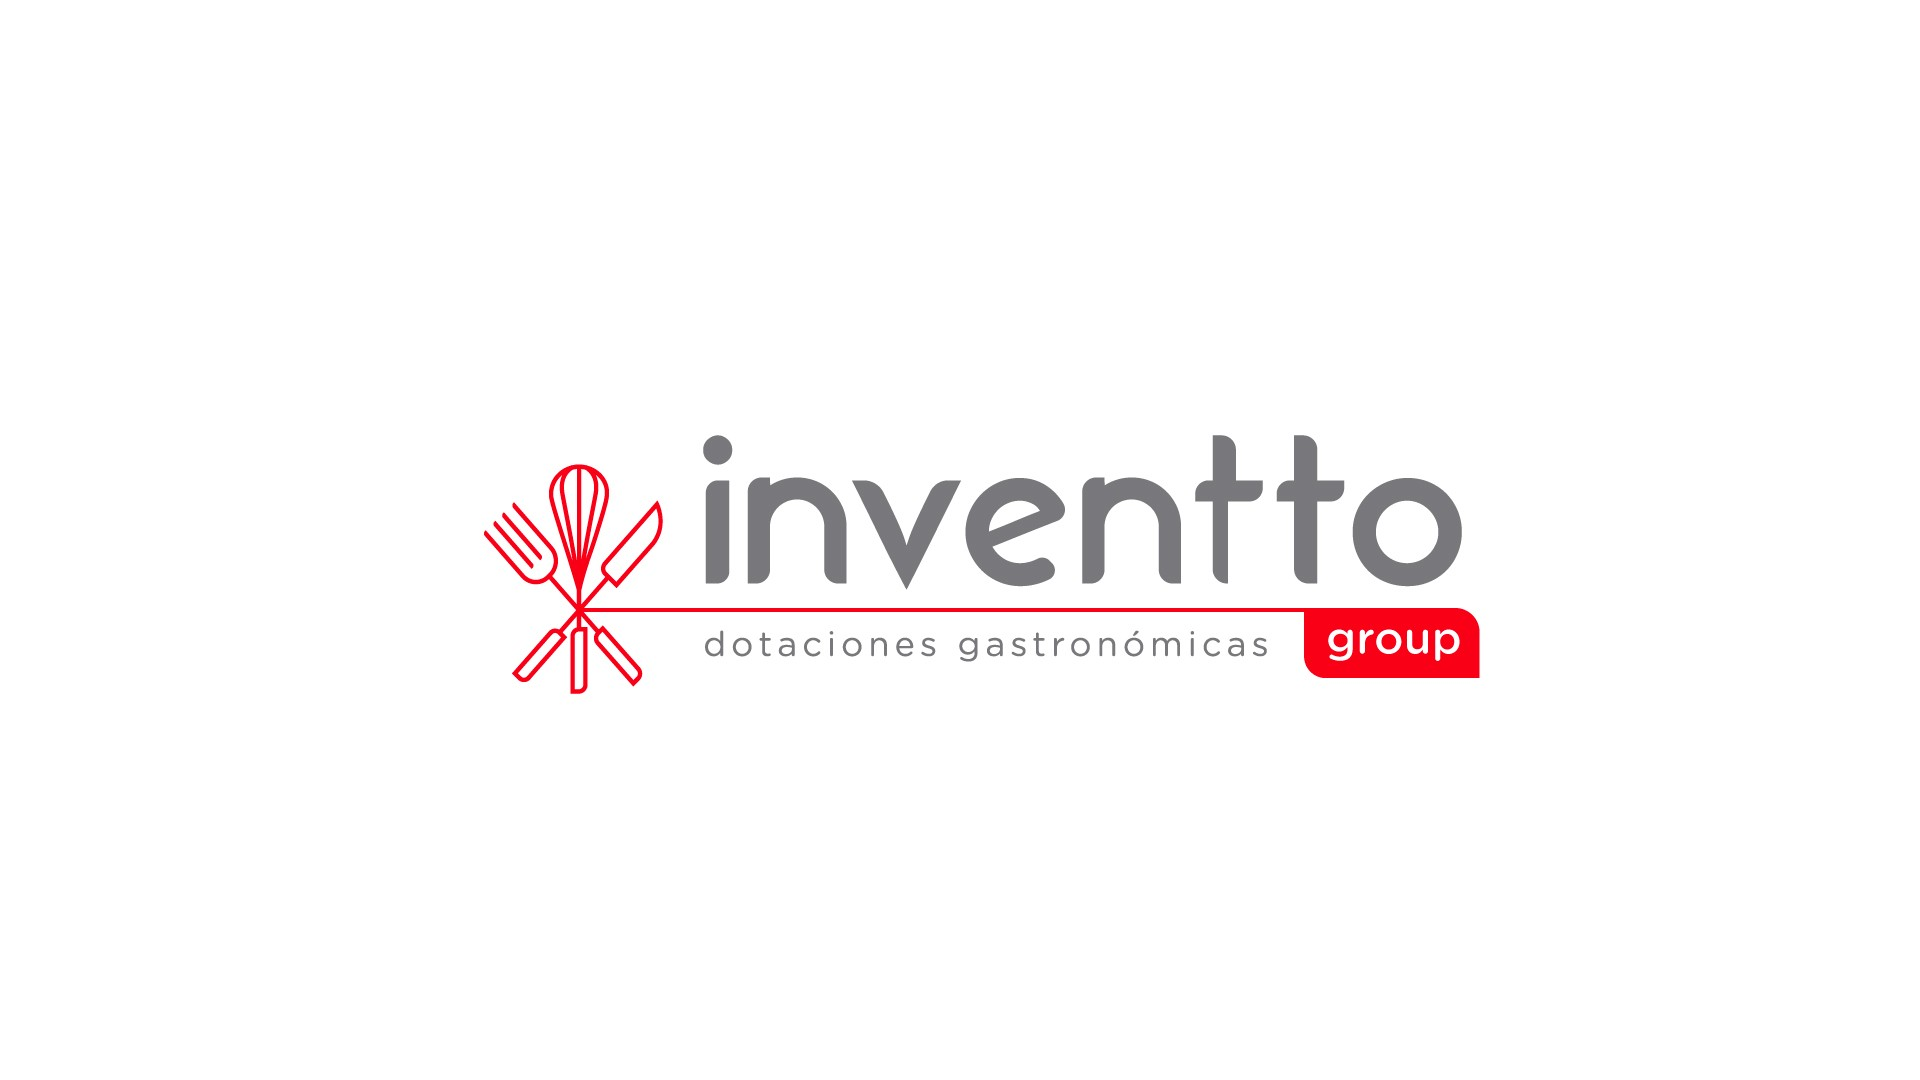 inventto_group